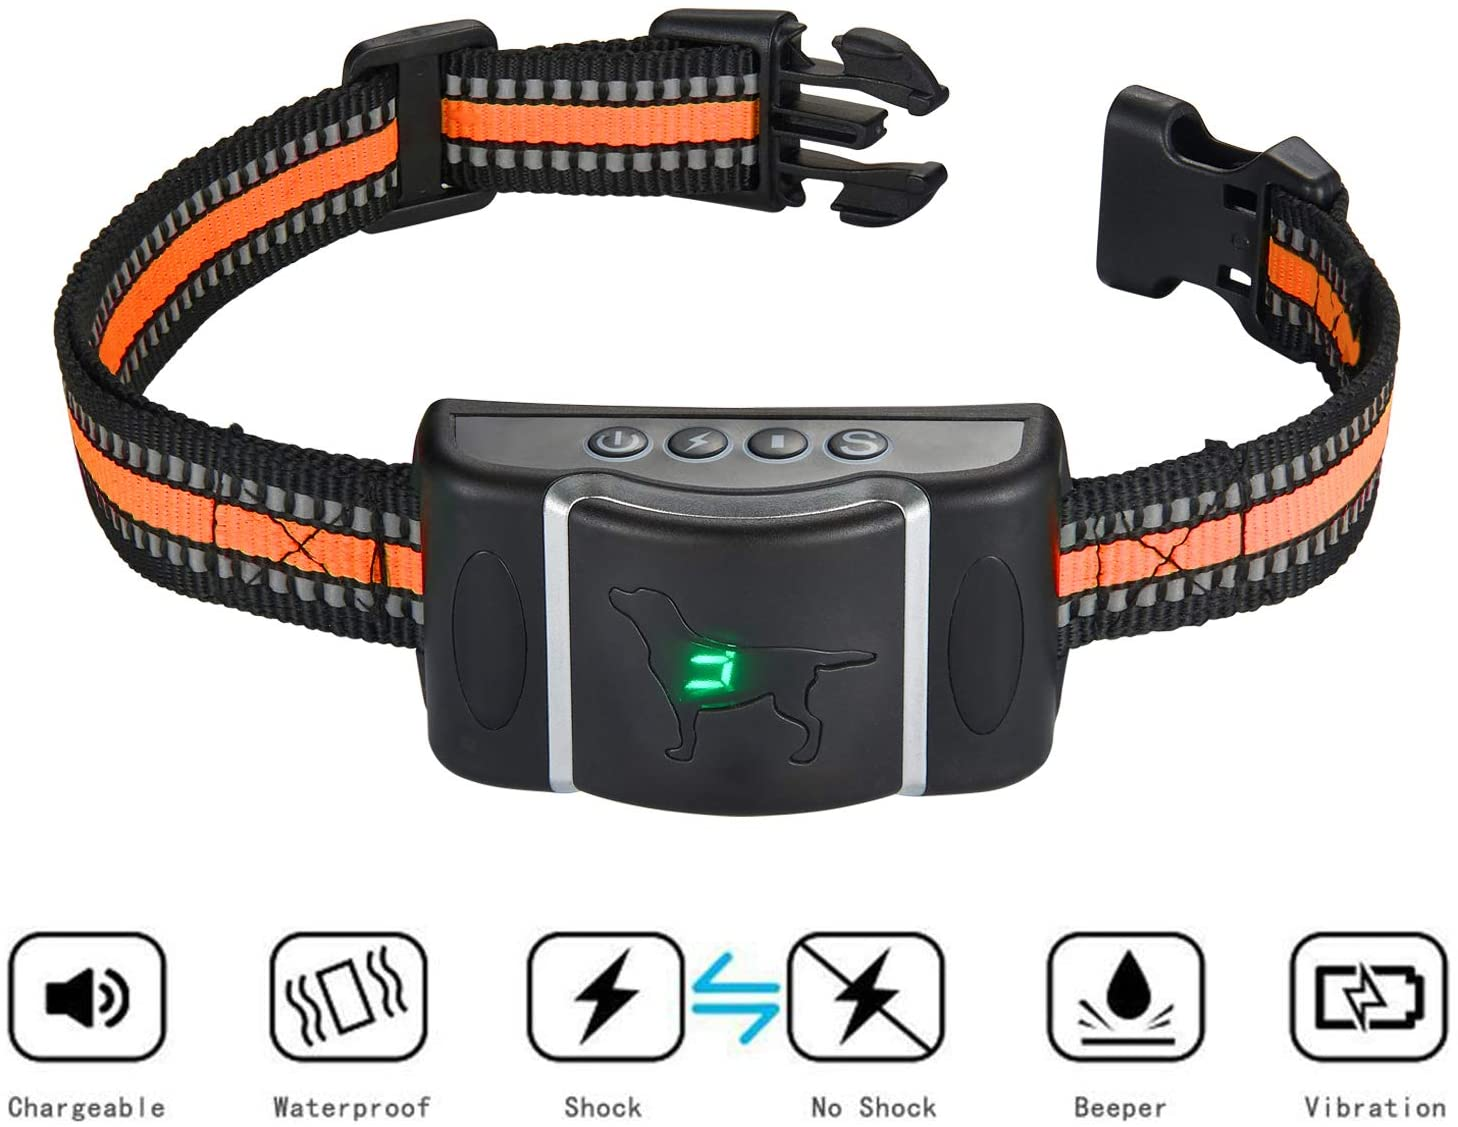 Bark Collar for Small Medium Large Dogs Breeds on Anti-Barking Device, Dog No Barking Collar Control-Rechargeable and Waterproof with Beep Vibration Humane Shock Modes,Orange Reflective Nylon Collar